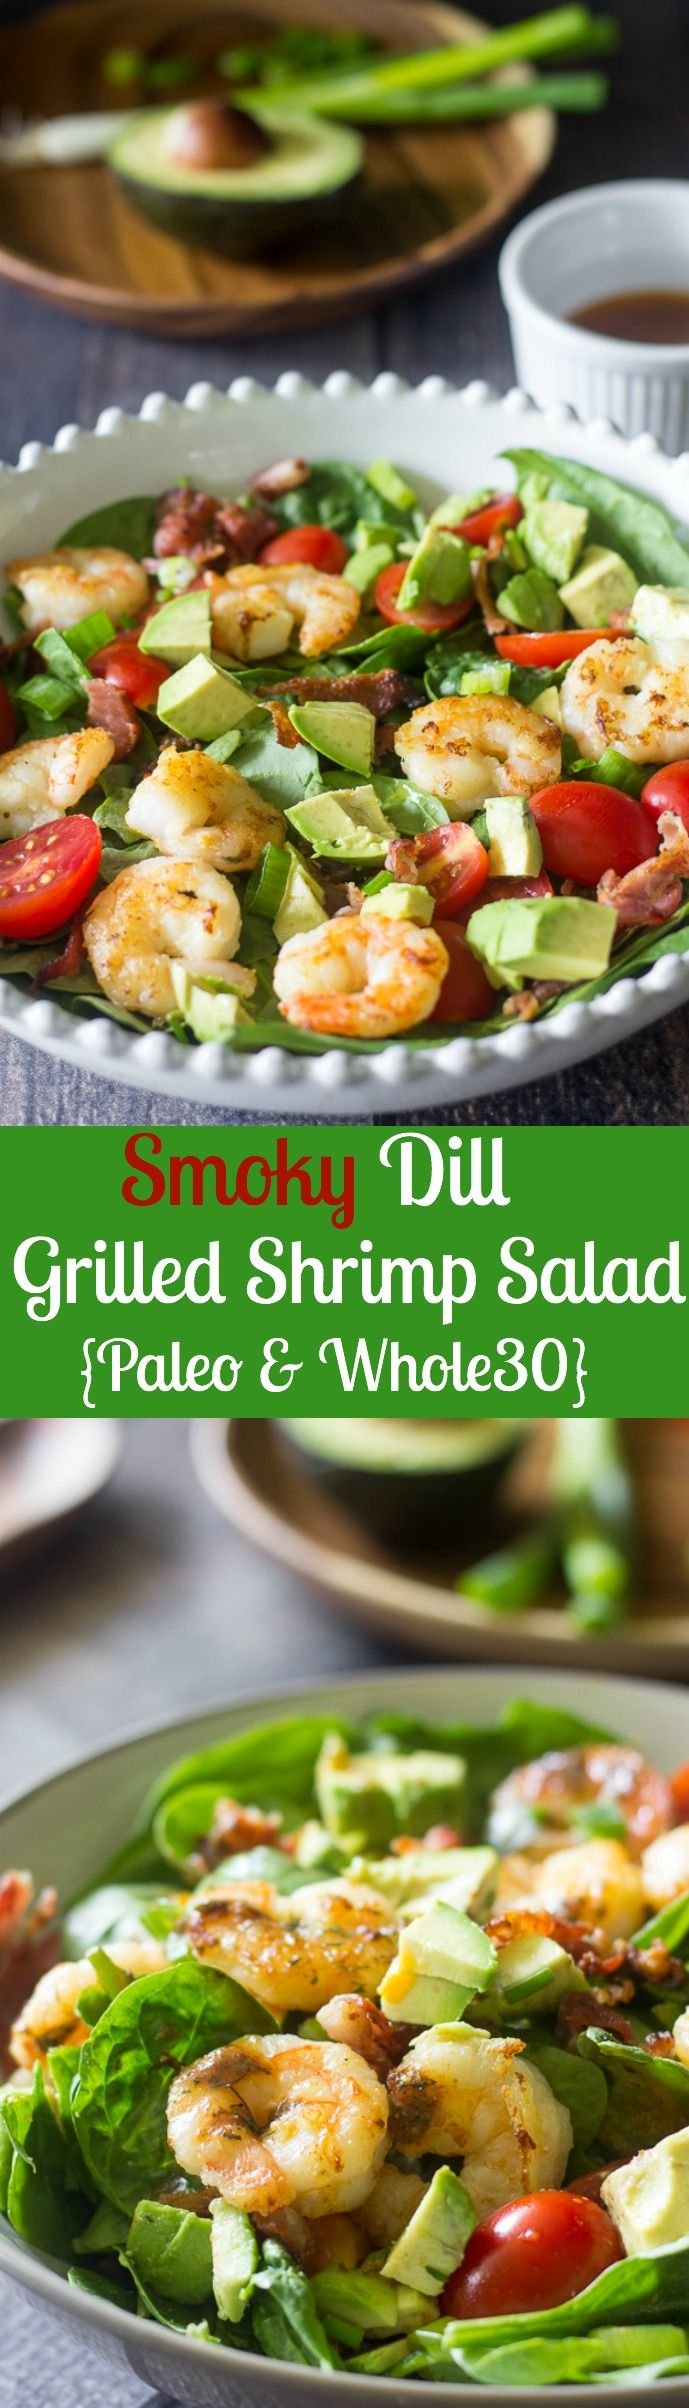 Smoky Dill Grilled Shrimp salad with bacon, avocado and tomatoes that's Paleo, Whole30 friendly and low FODMAP!